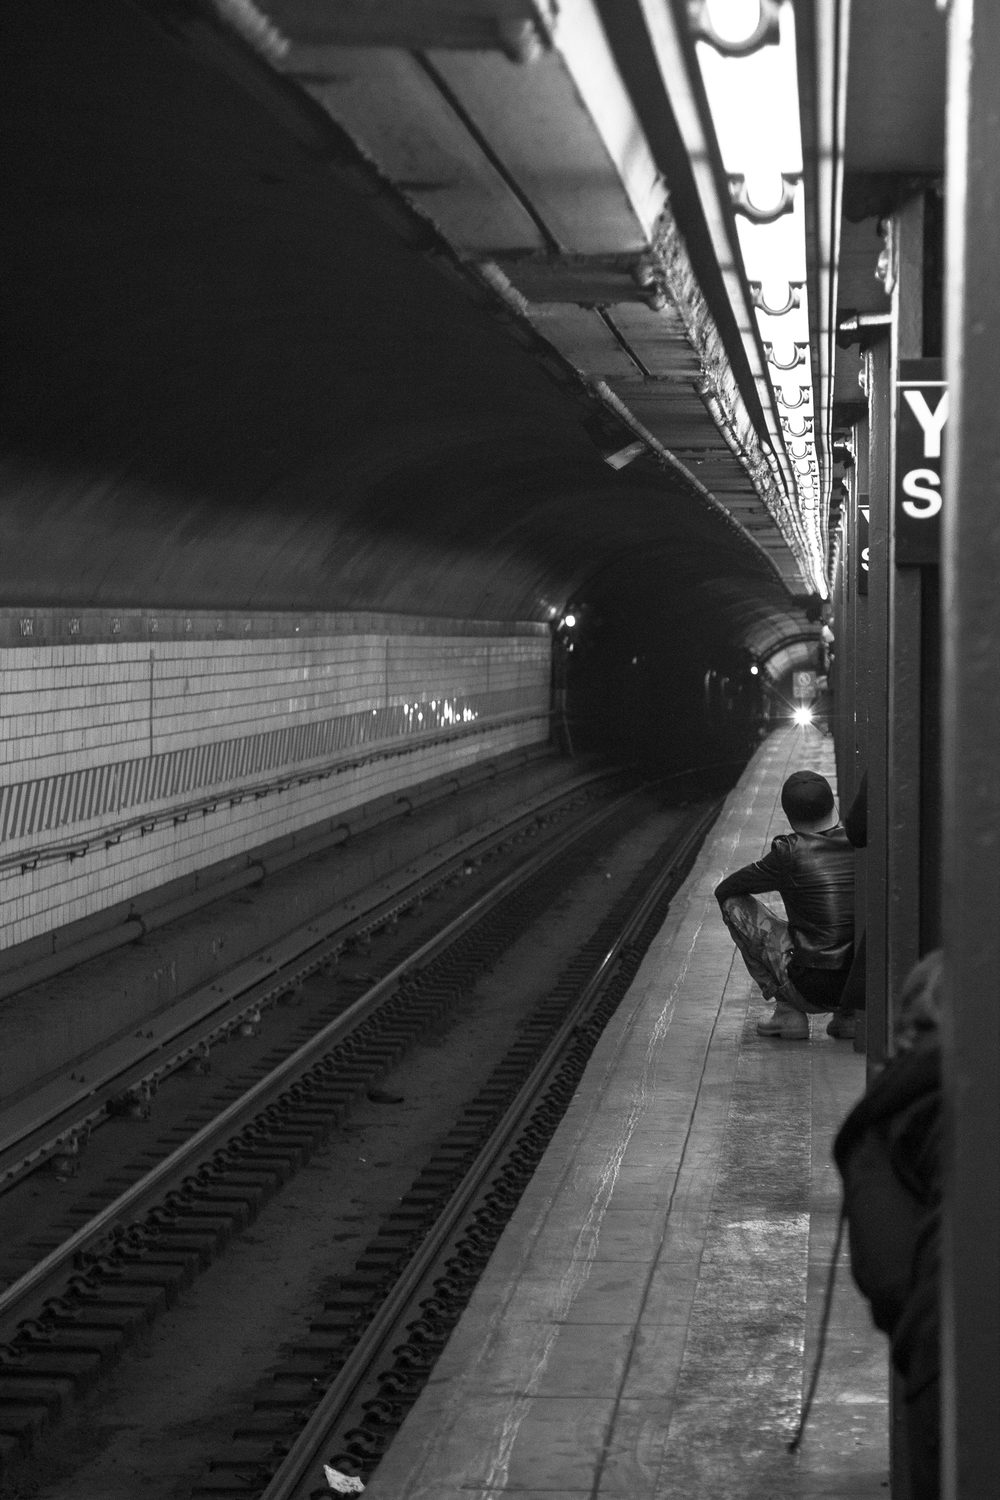 A young man waits for the F train at the York St. station, the last stop on the line before going into Manhattan from Brooklyn (or, the first stop in Brooklyn after leaving Manhattan)